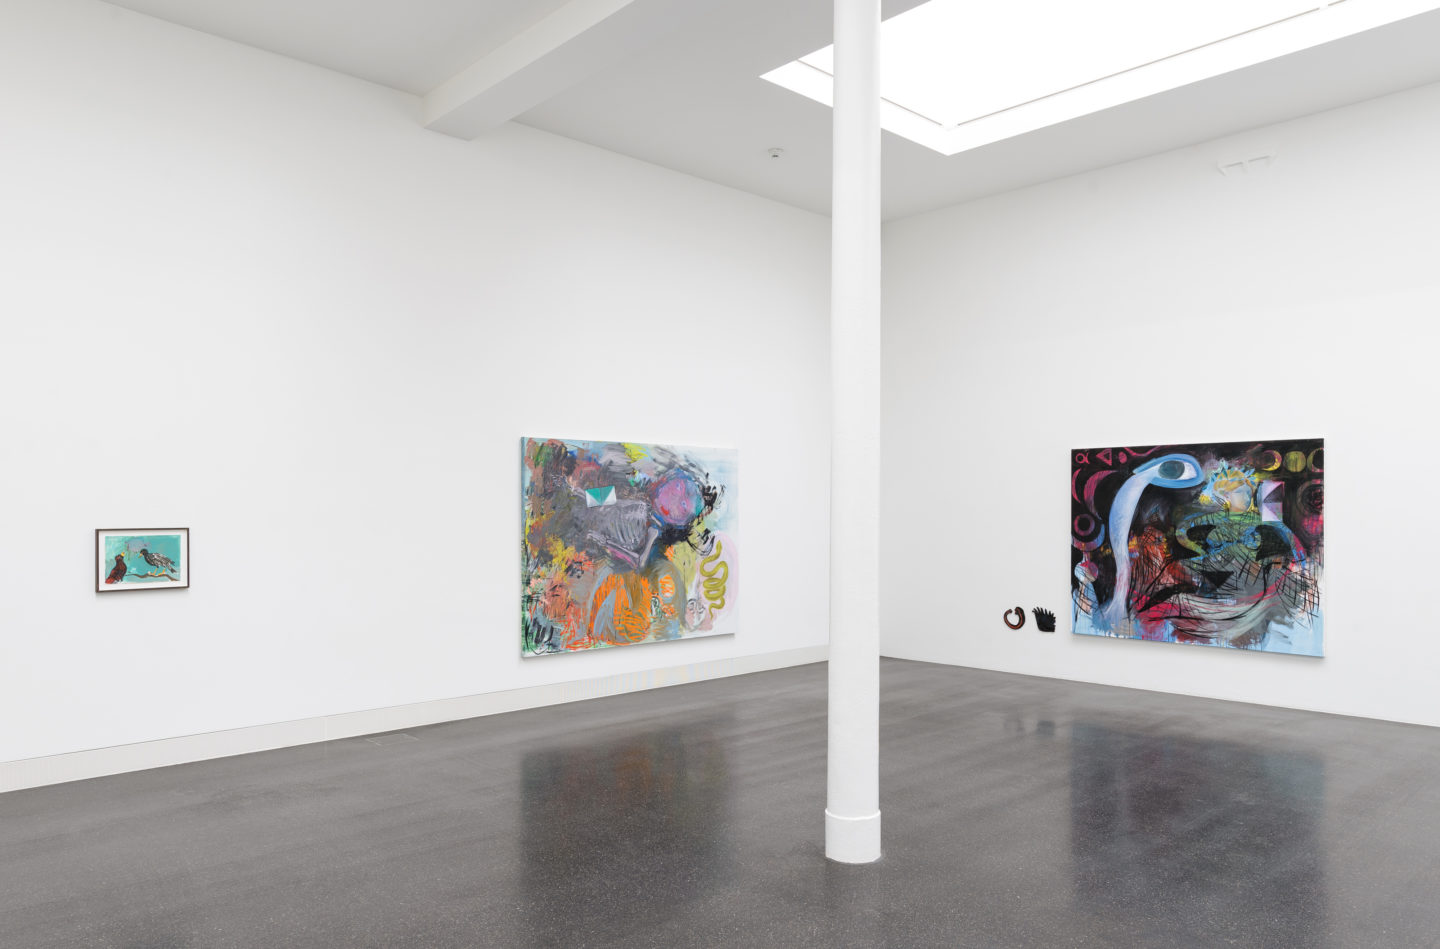 """Installation View Lucy Stein """"Knockers"""" at Galerie Gregor Staiger, Zurich / Courtesy: the artist and Galerie Gregor Staiger, Zurich"""